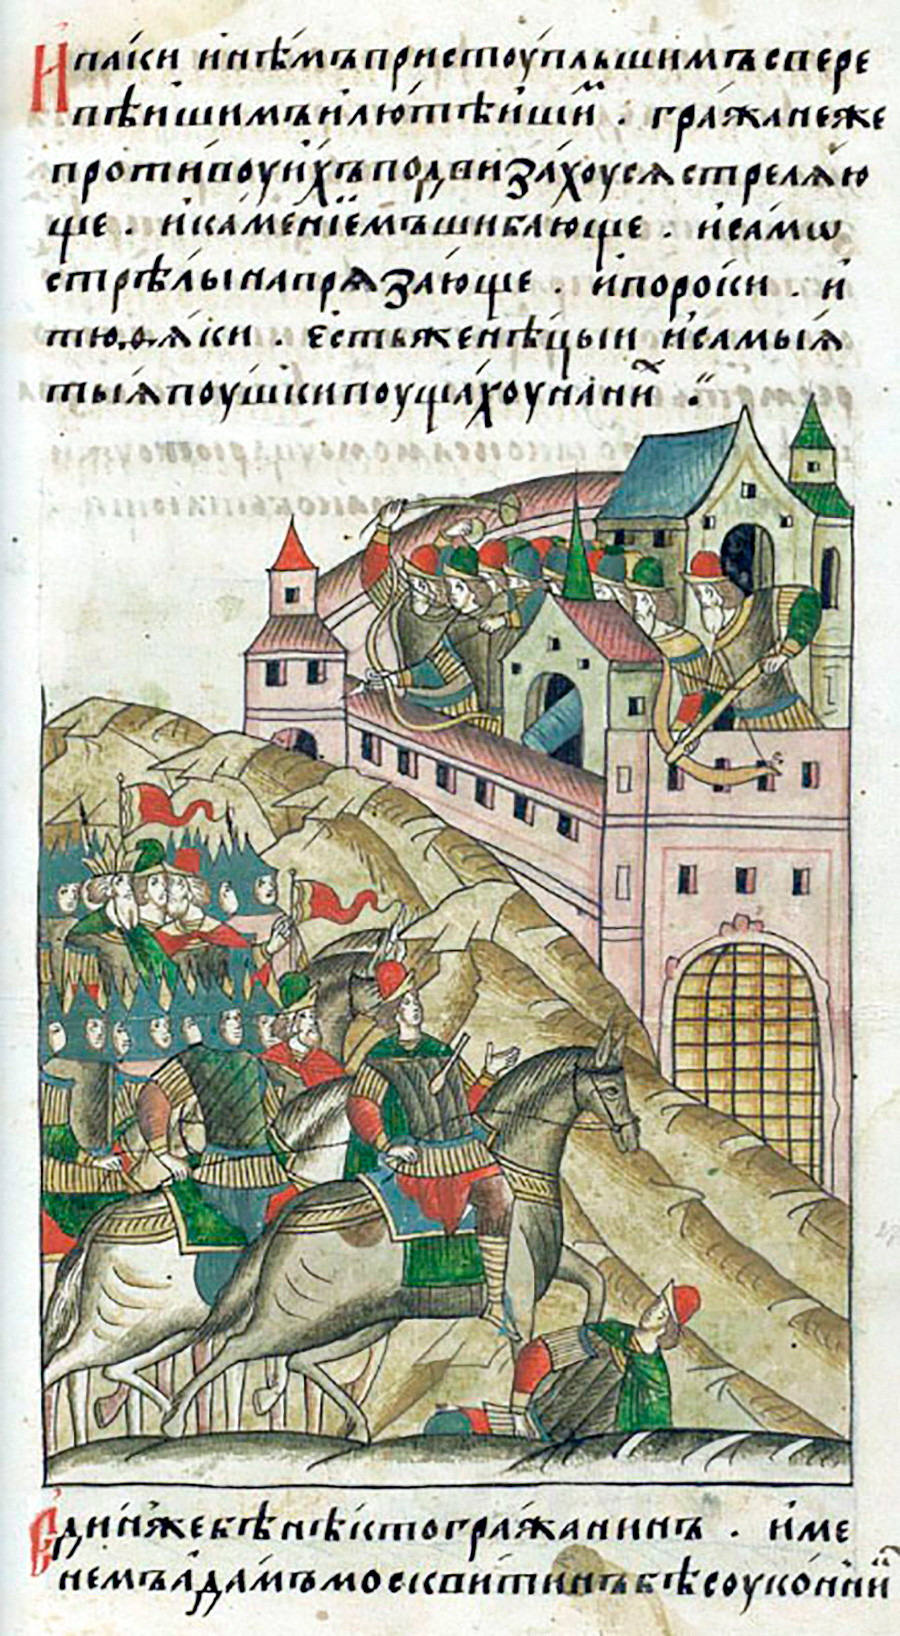 Khan Tokhtamysh's siege of Moscow, 1382. A 16th-century chronicle illustration. A fortress gun can be seen pictured in the central tower of the city wall.